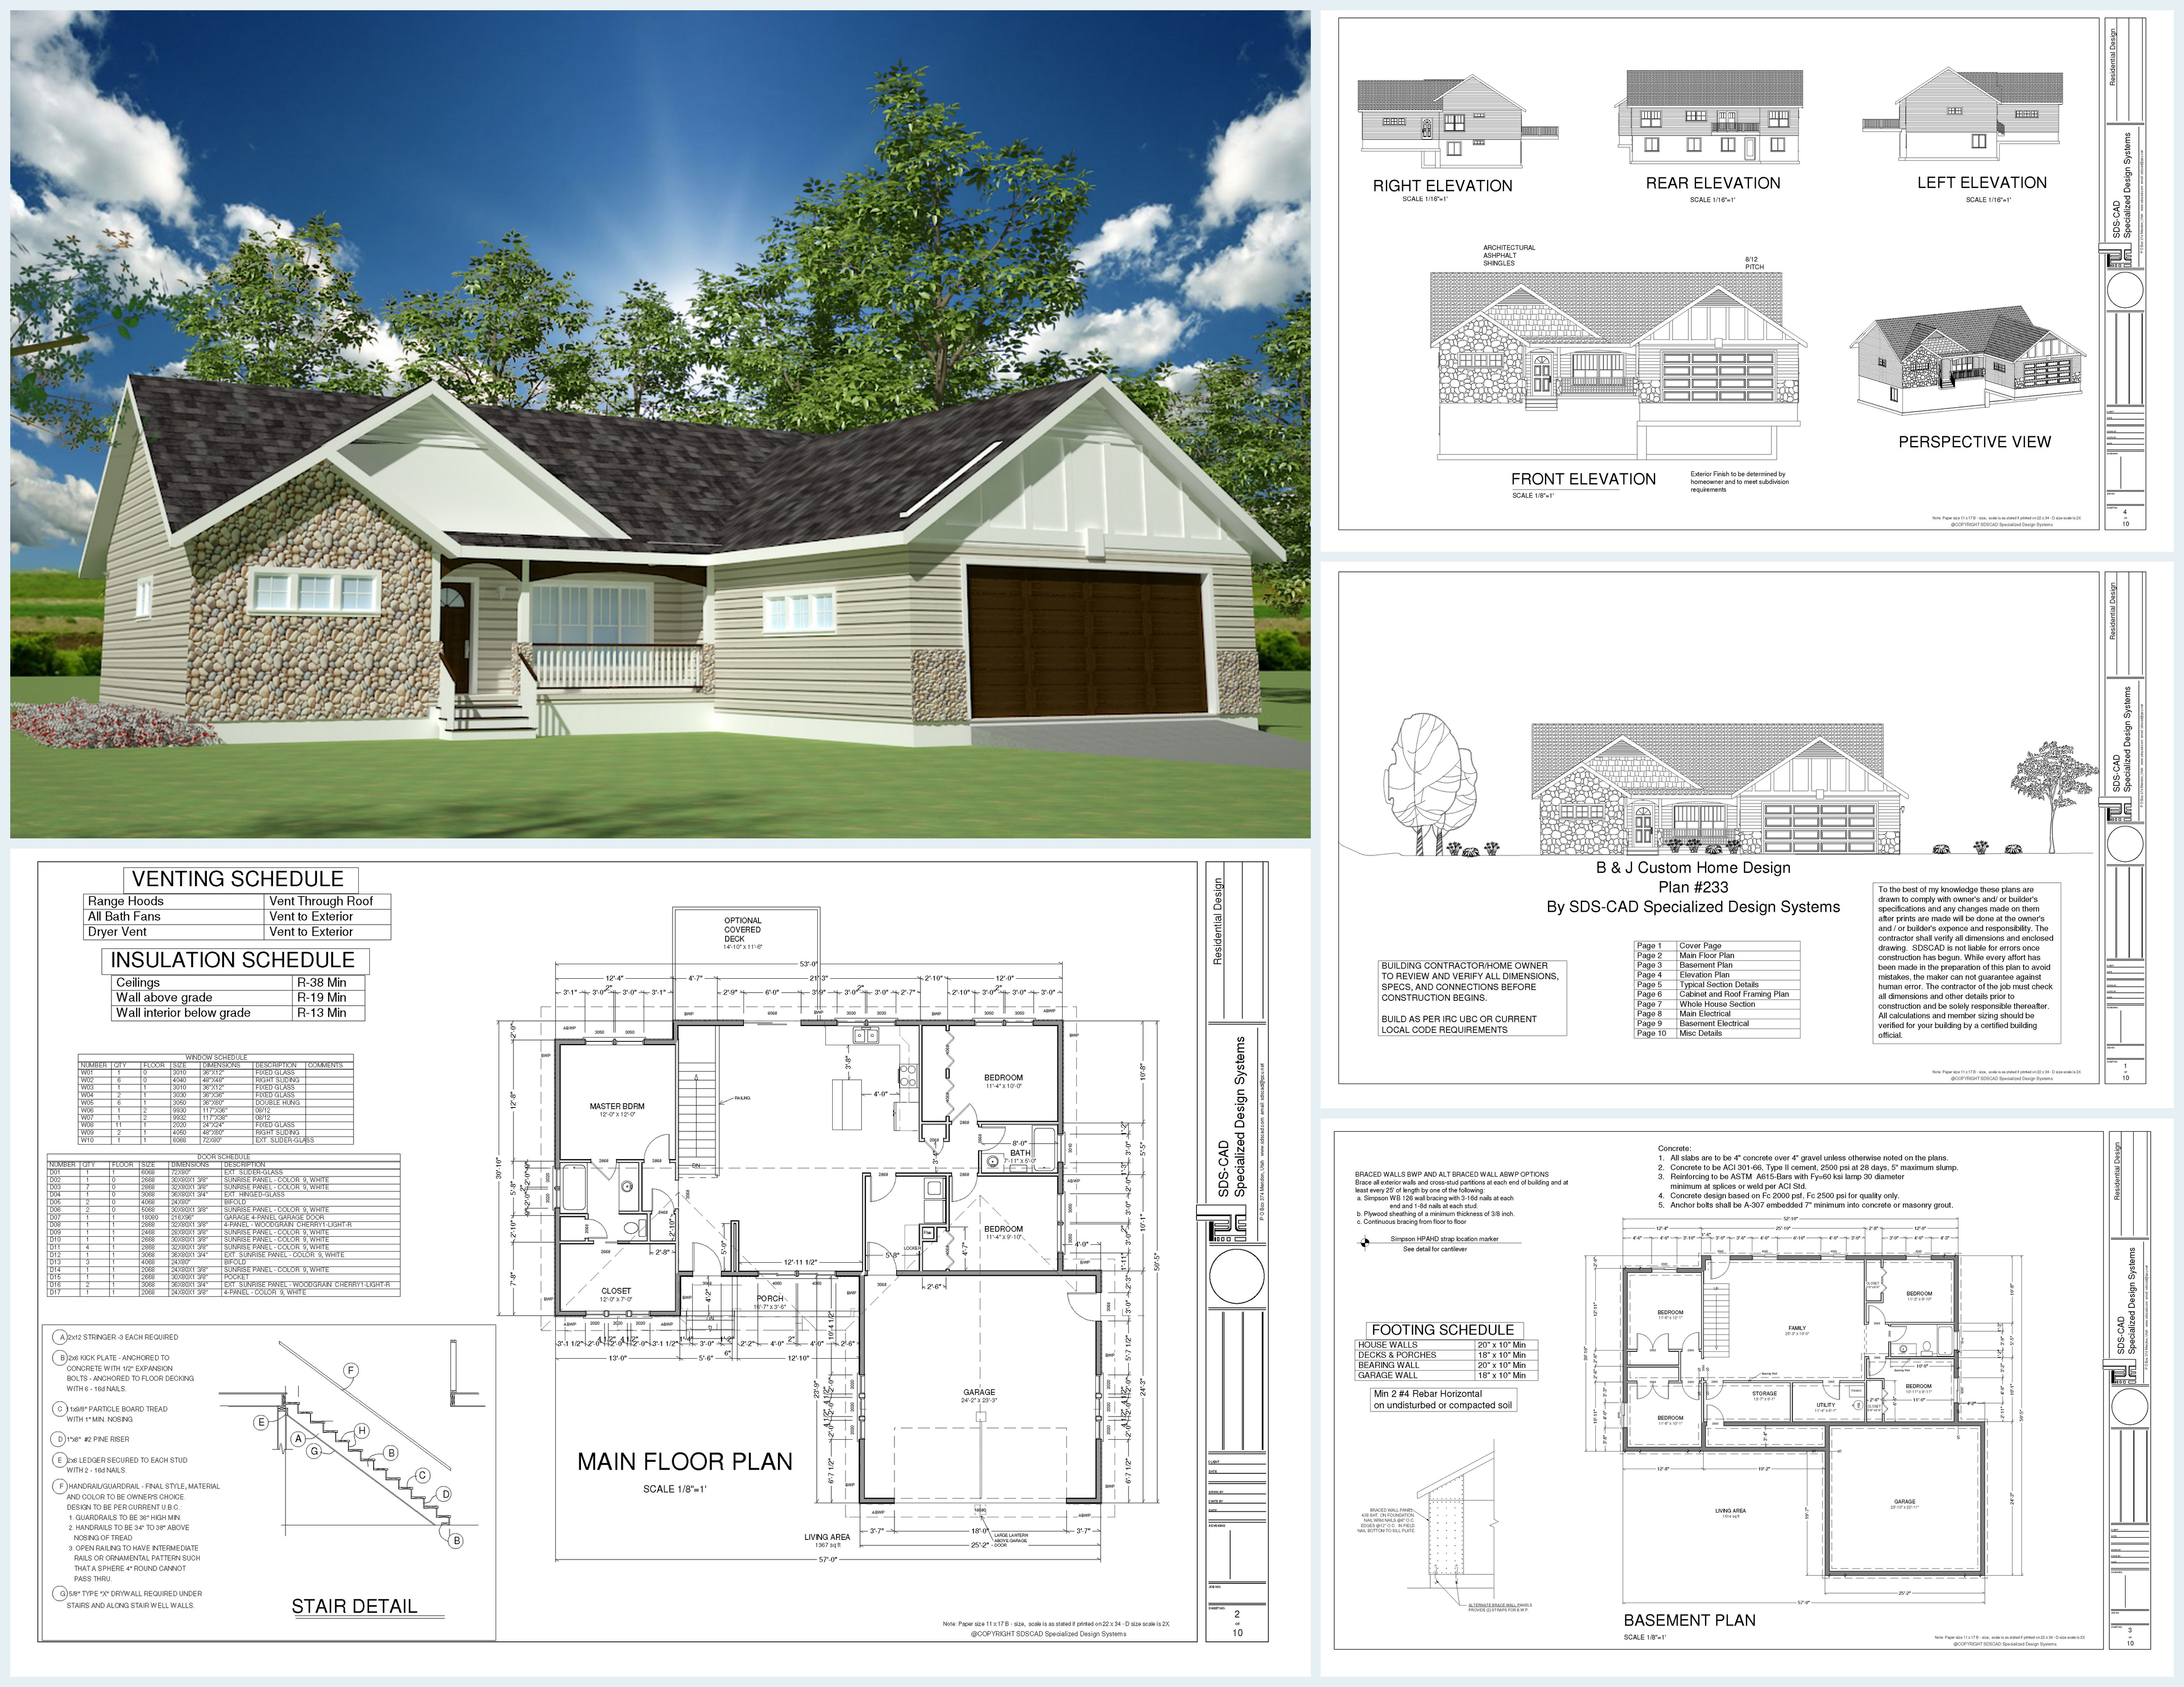 H233 1367 Sq Ft Custom Spec House Plans In Both Pdf And: planning a house